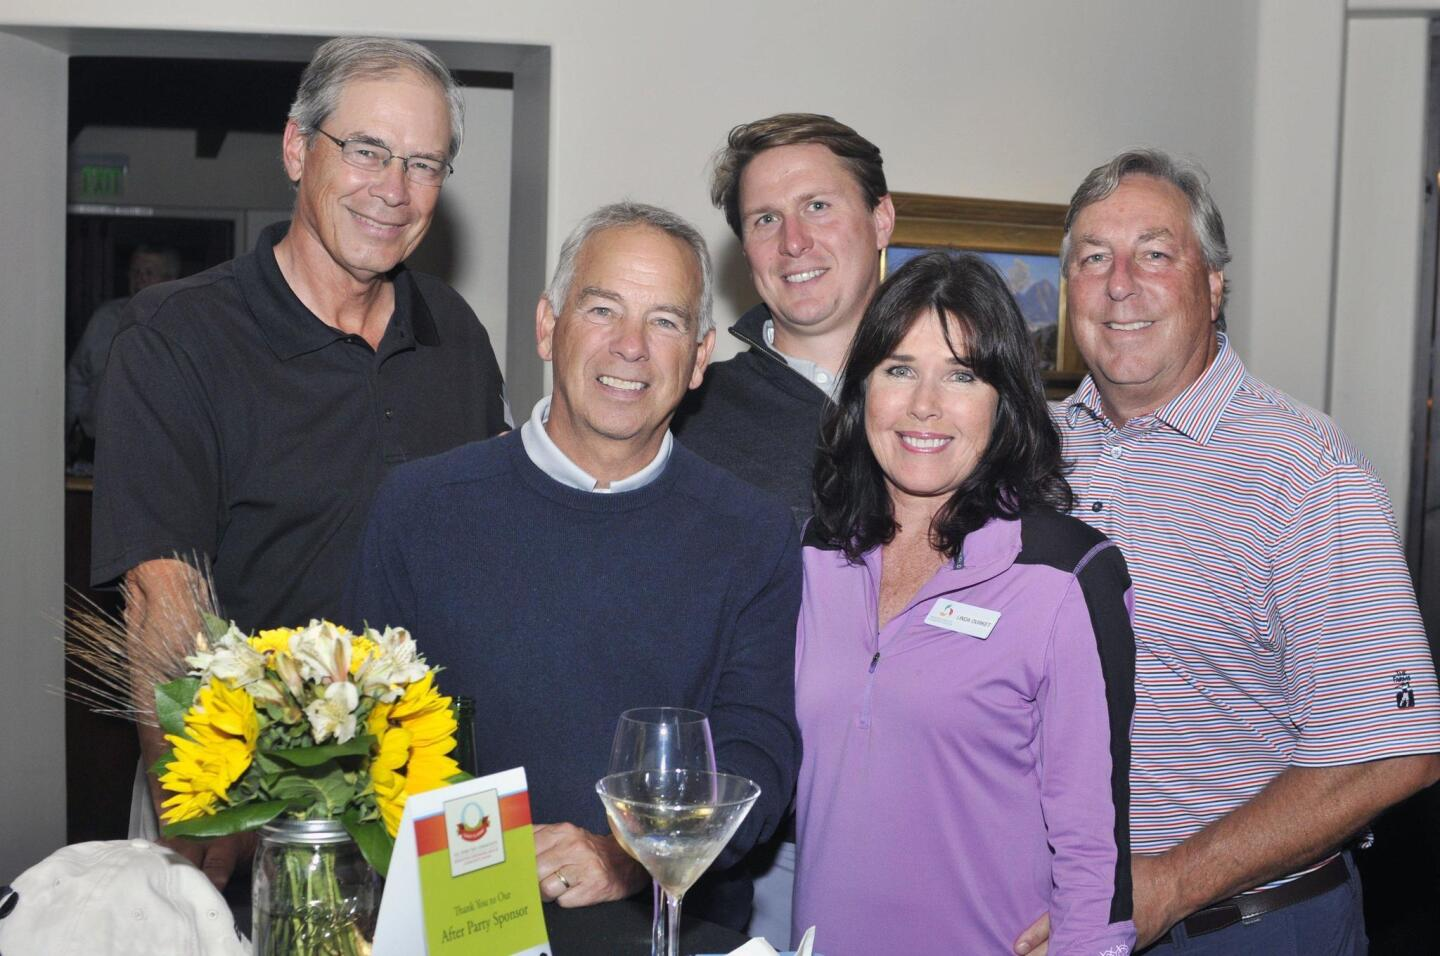 Dan Zazworsky, Ron Wilcox, Josh Sherman, RSF Community Center Executive Director Linda and Tony Durket